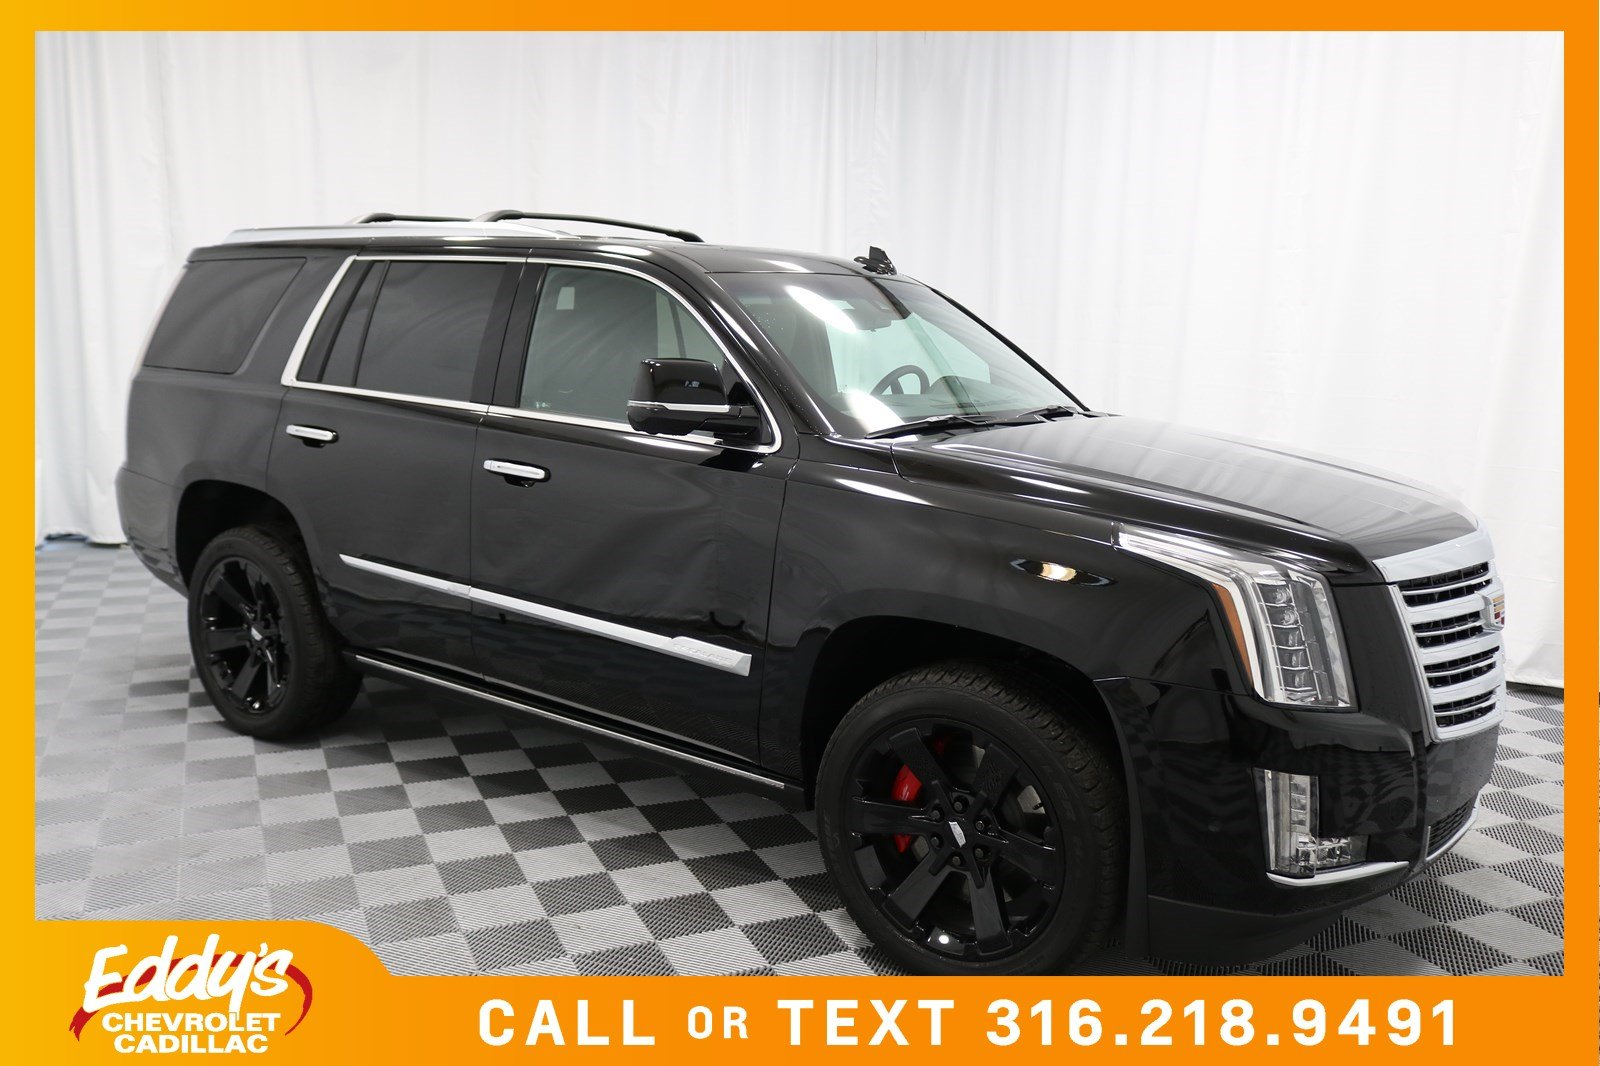 Cadillac cadillac escalade weight : New 2018 Cadillac Escalade Platinum 4x4 SUV in Wichita #CD5322 ...